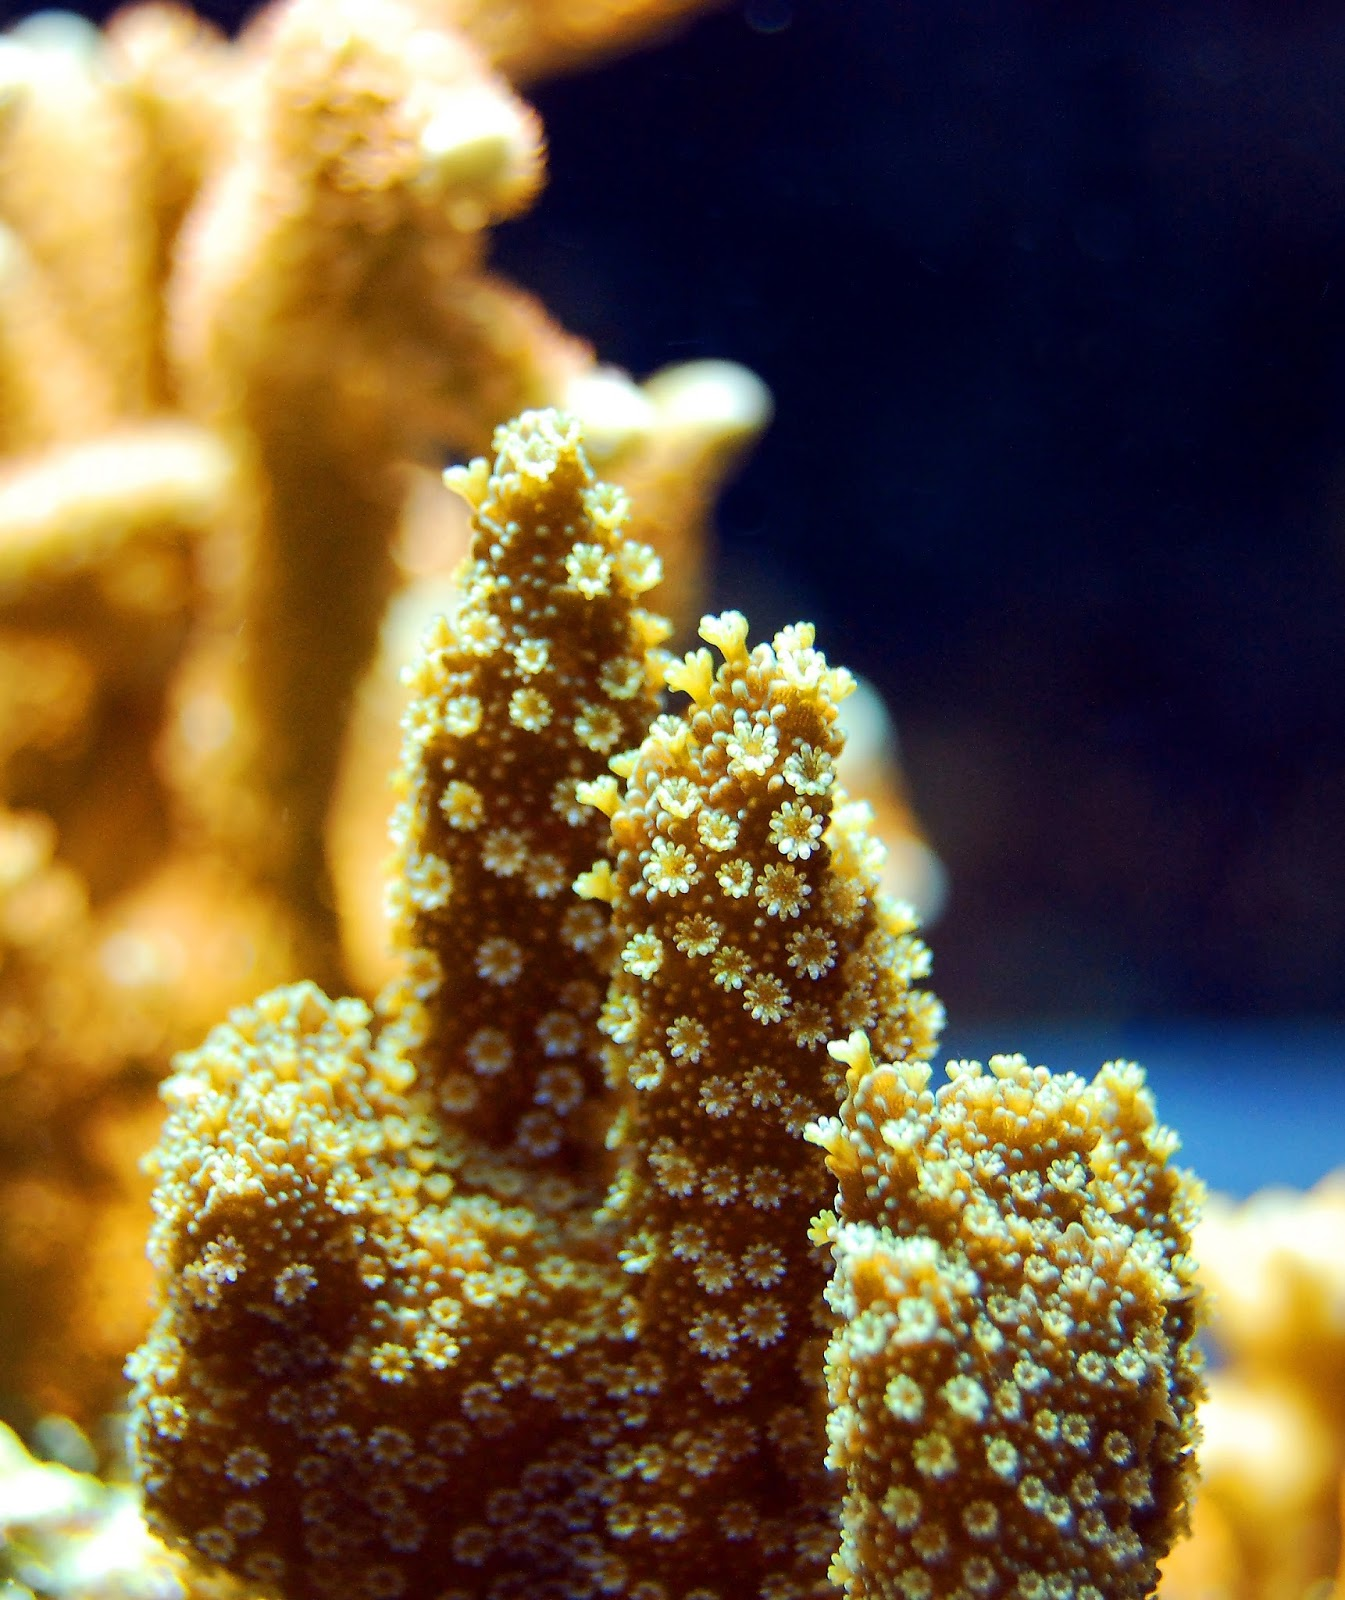 Picture of a daisy coral.